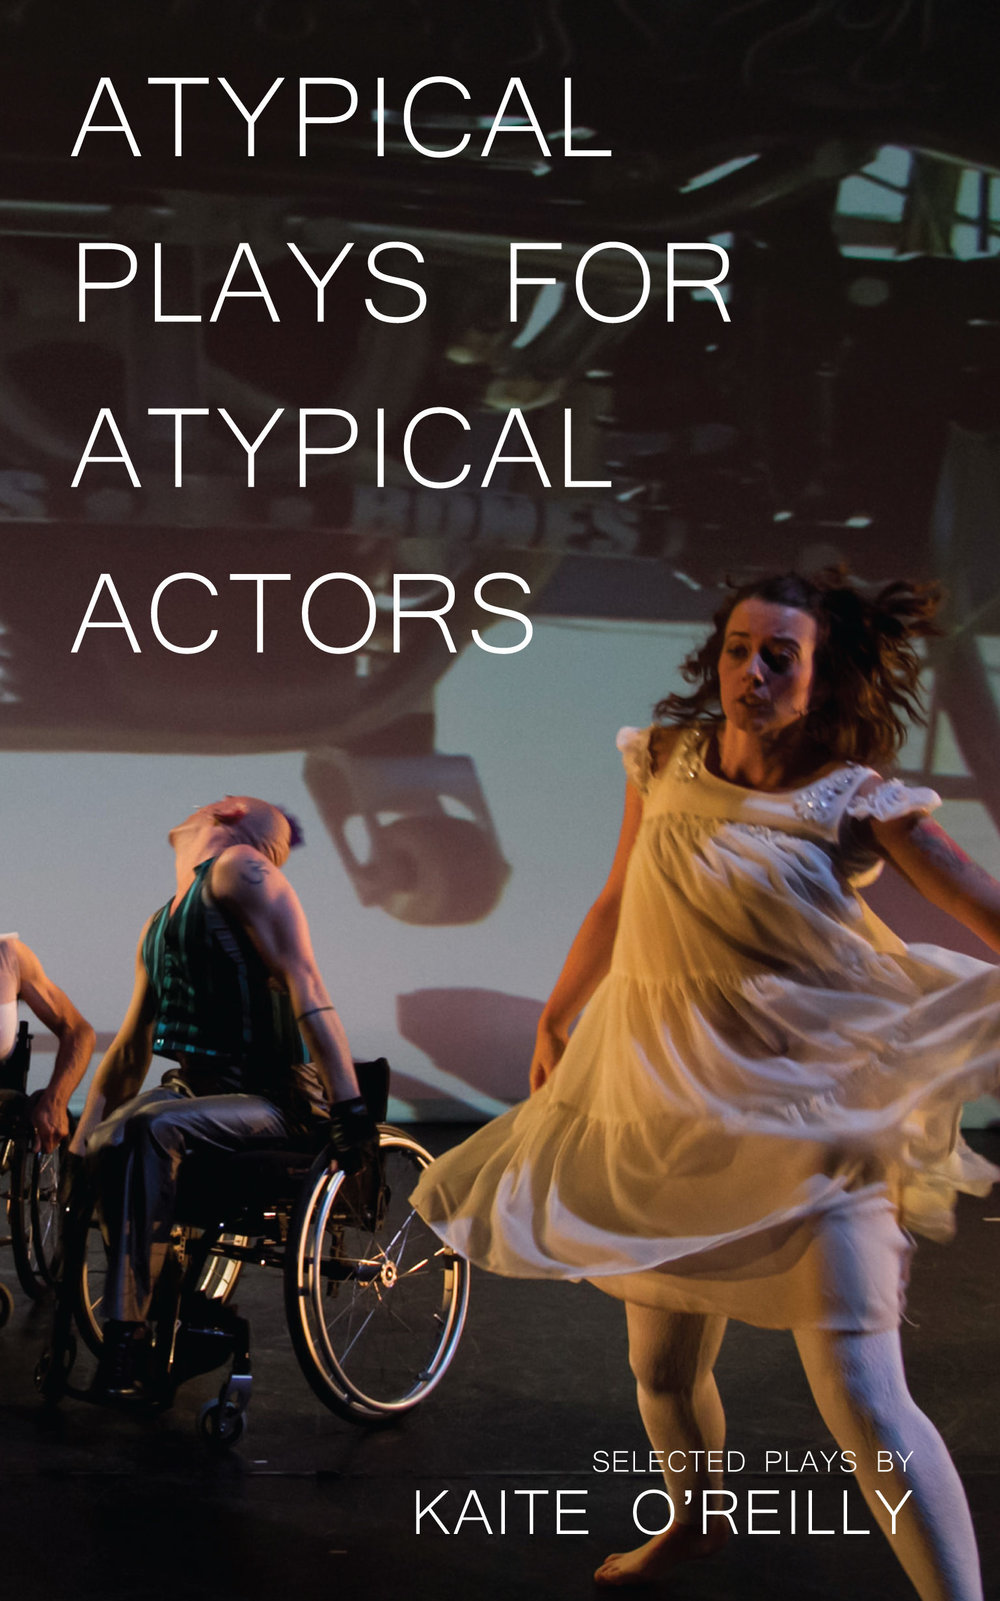 Atypical Plays For Atypical Actors is available to order from the Oberon Books website and from bookstores.